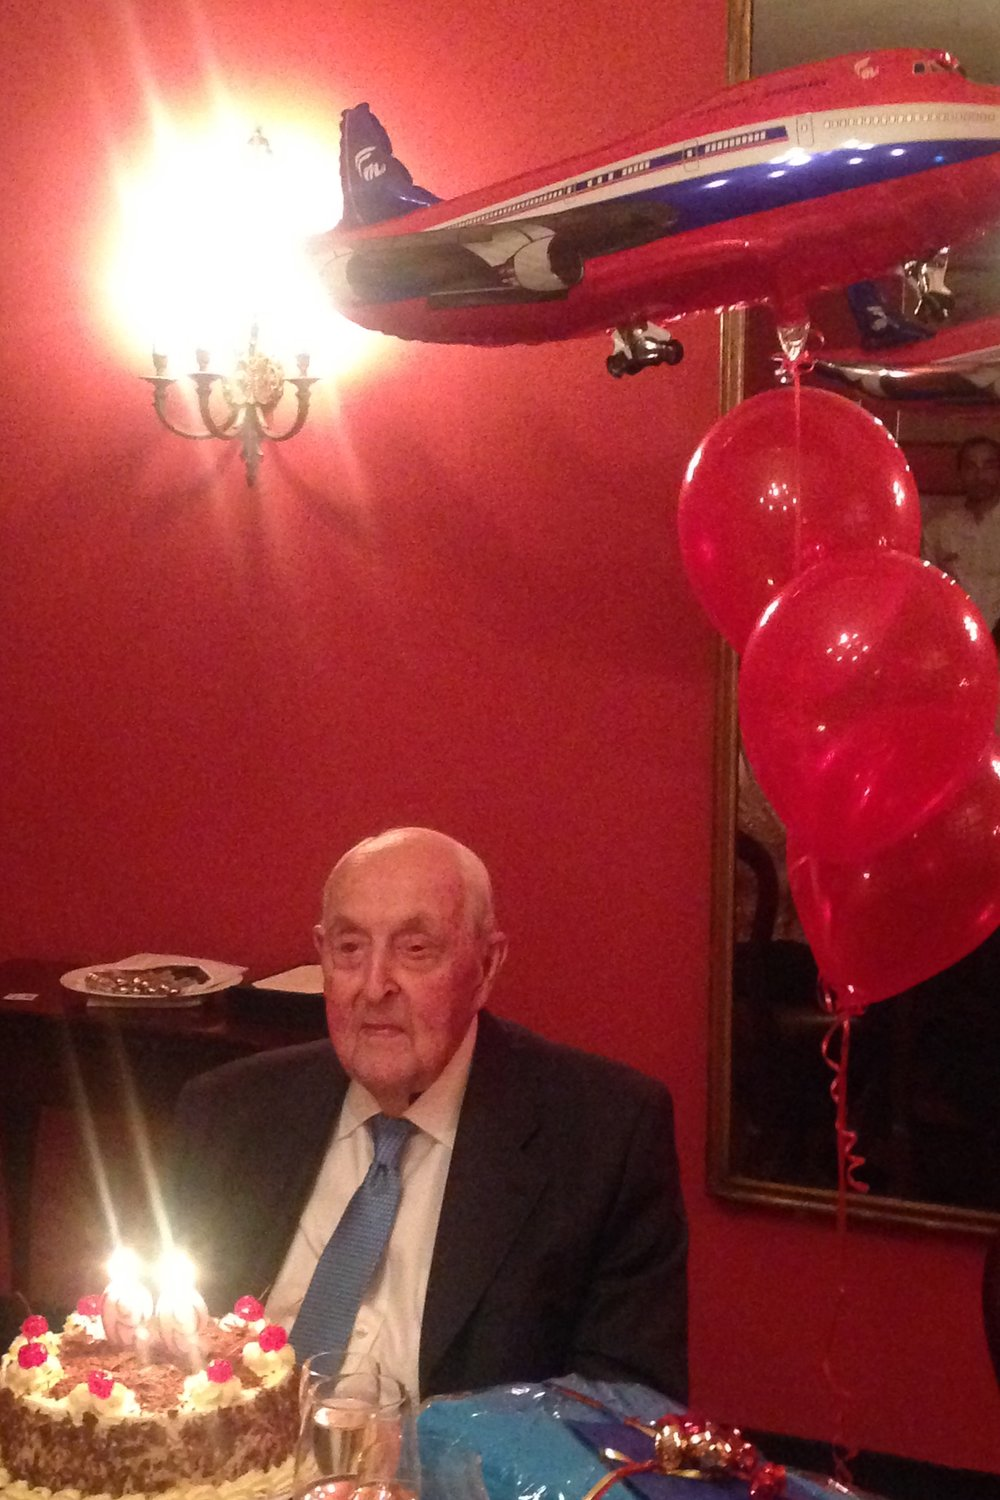 Sir Lennox celebratimg 99th Birthday at Union Club, Sidney - 2, 7 May '16.JPG